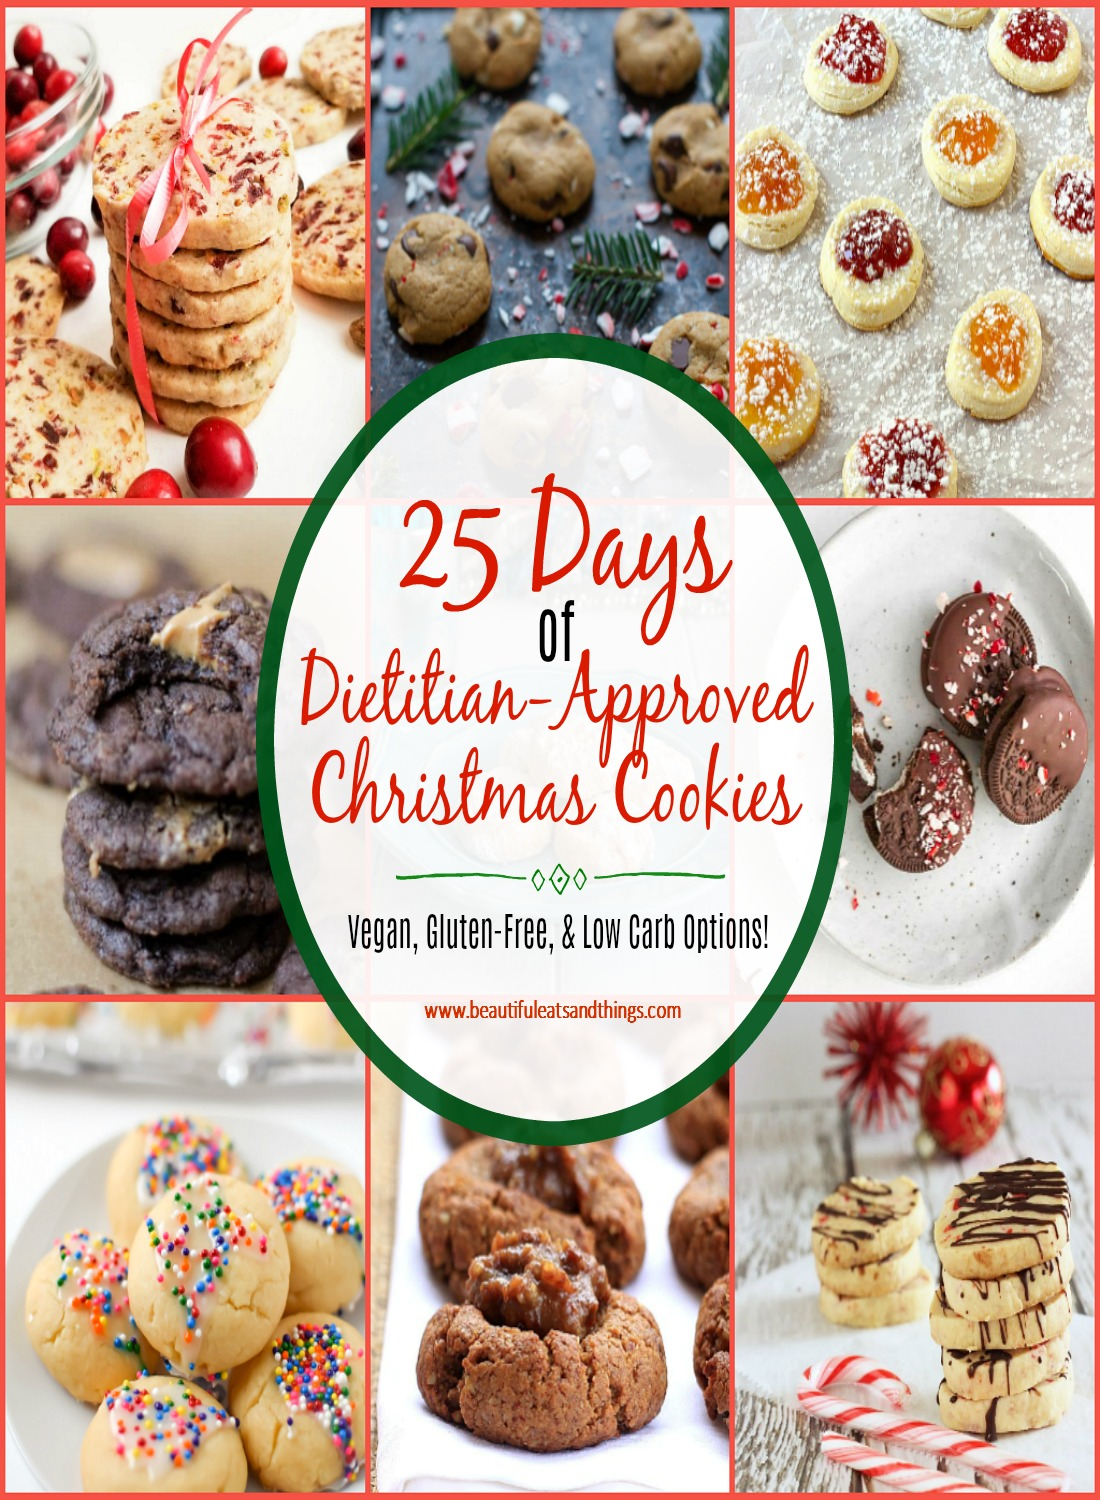 25 Days of Christmas Cookies